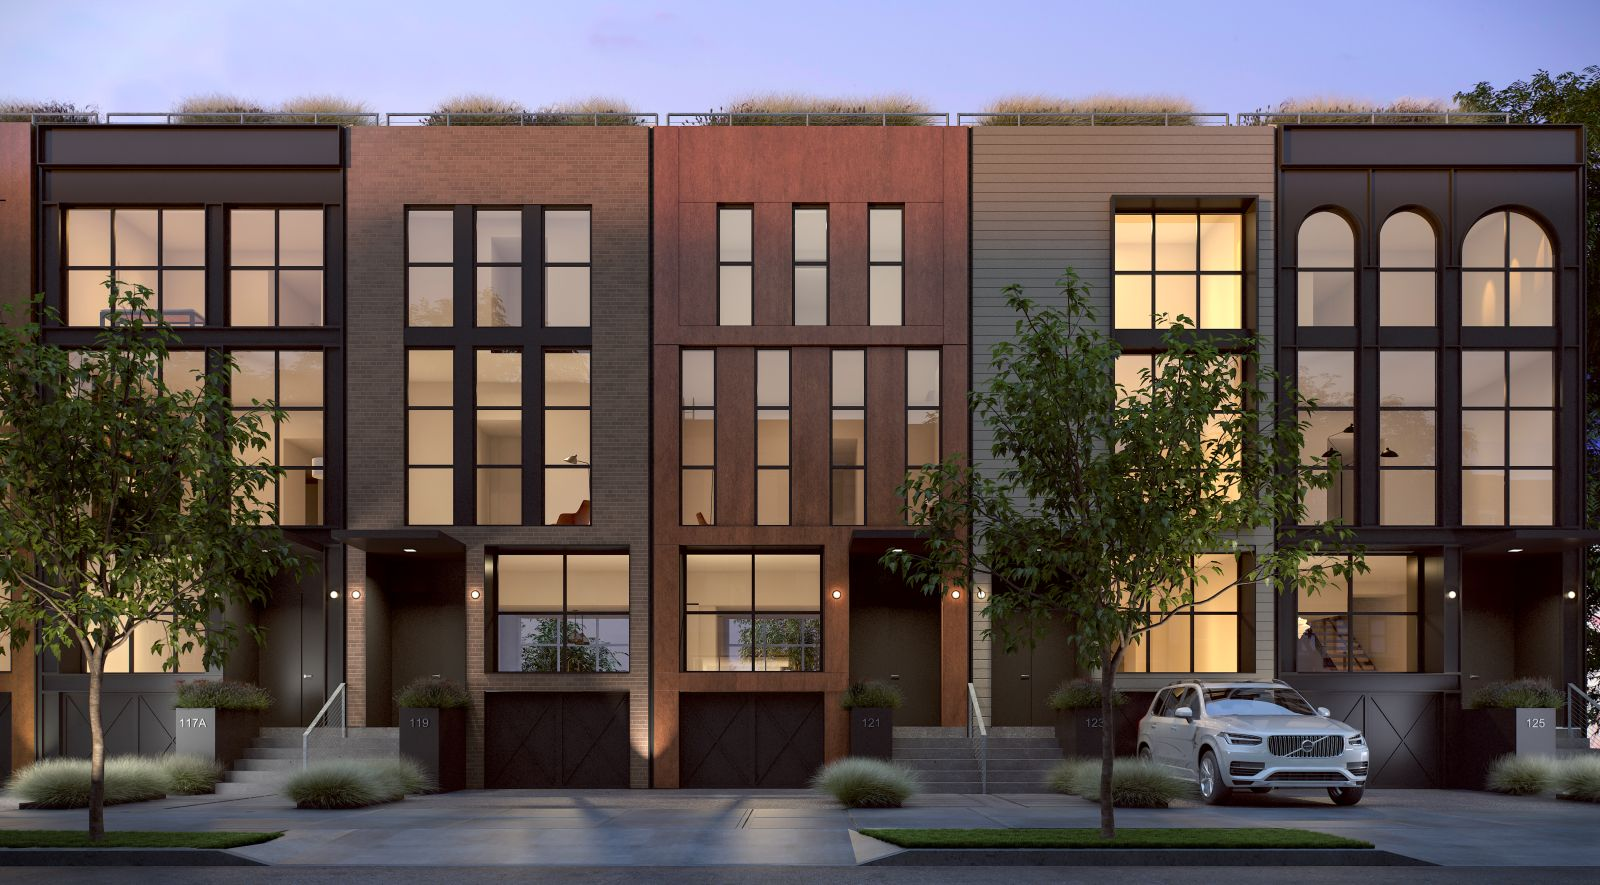 021383 also Project moreover Row House Floor Plans together with Nyc Townhouse 3 Bedroom Floor Plans additionally River Bay Co Op City. on co op city apartment floor plans